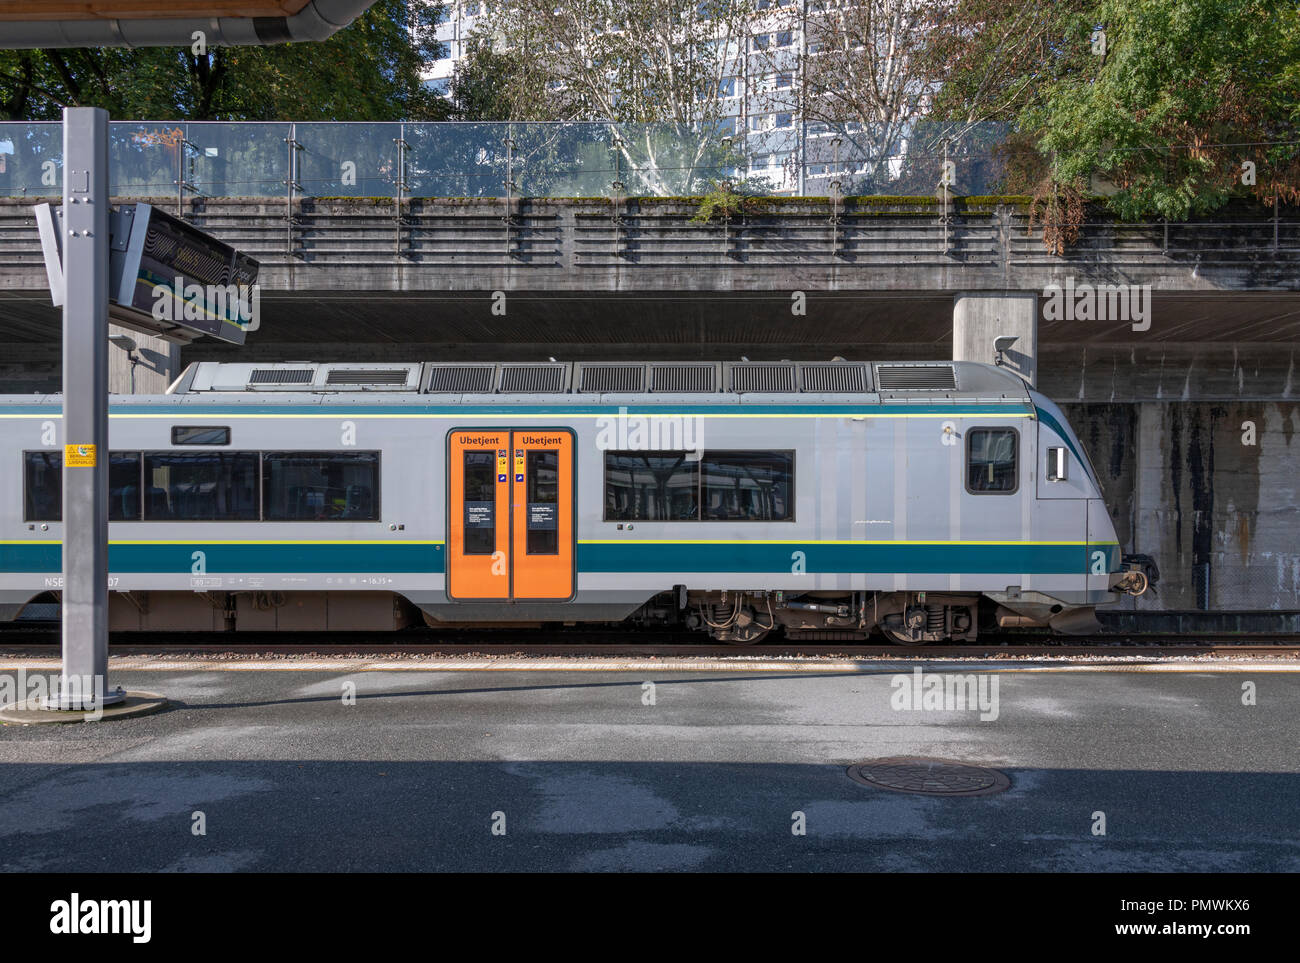 Train waiting at Stavanger Station, Norway - Stock Image